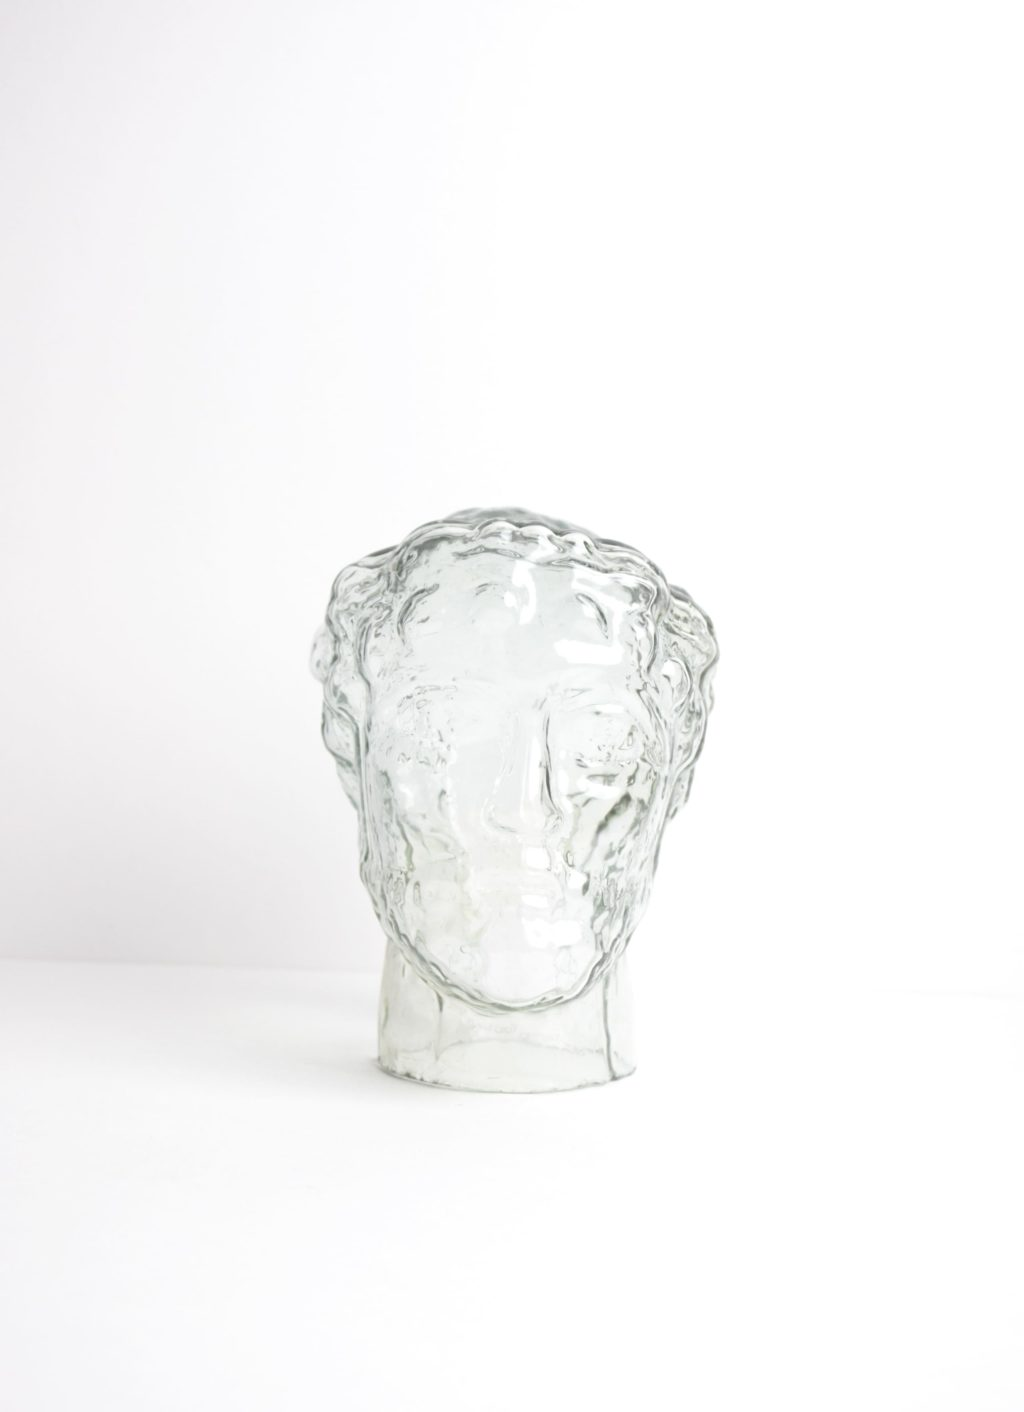 La Soufflerie - Pericles - tete_transparent - recycled glass